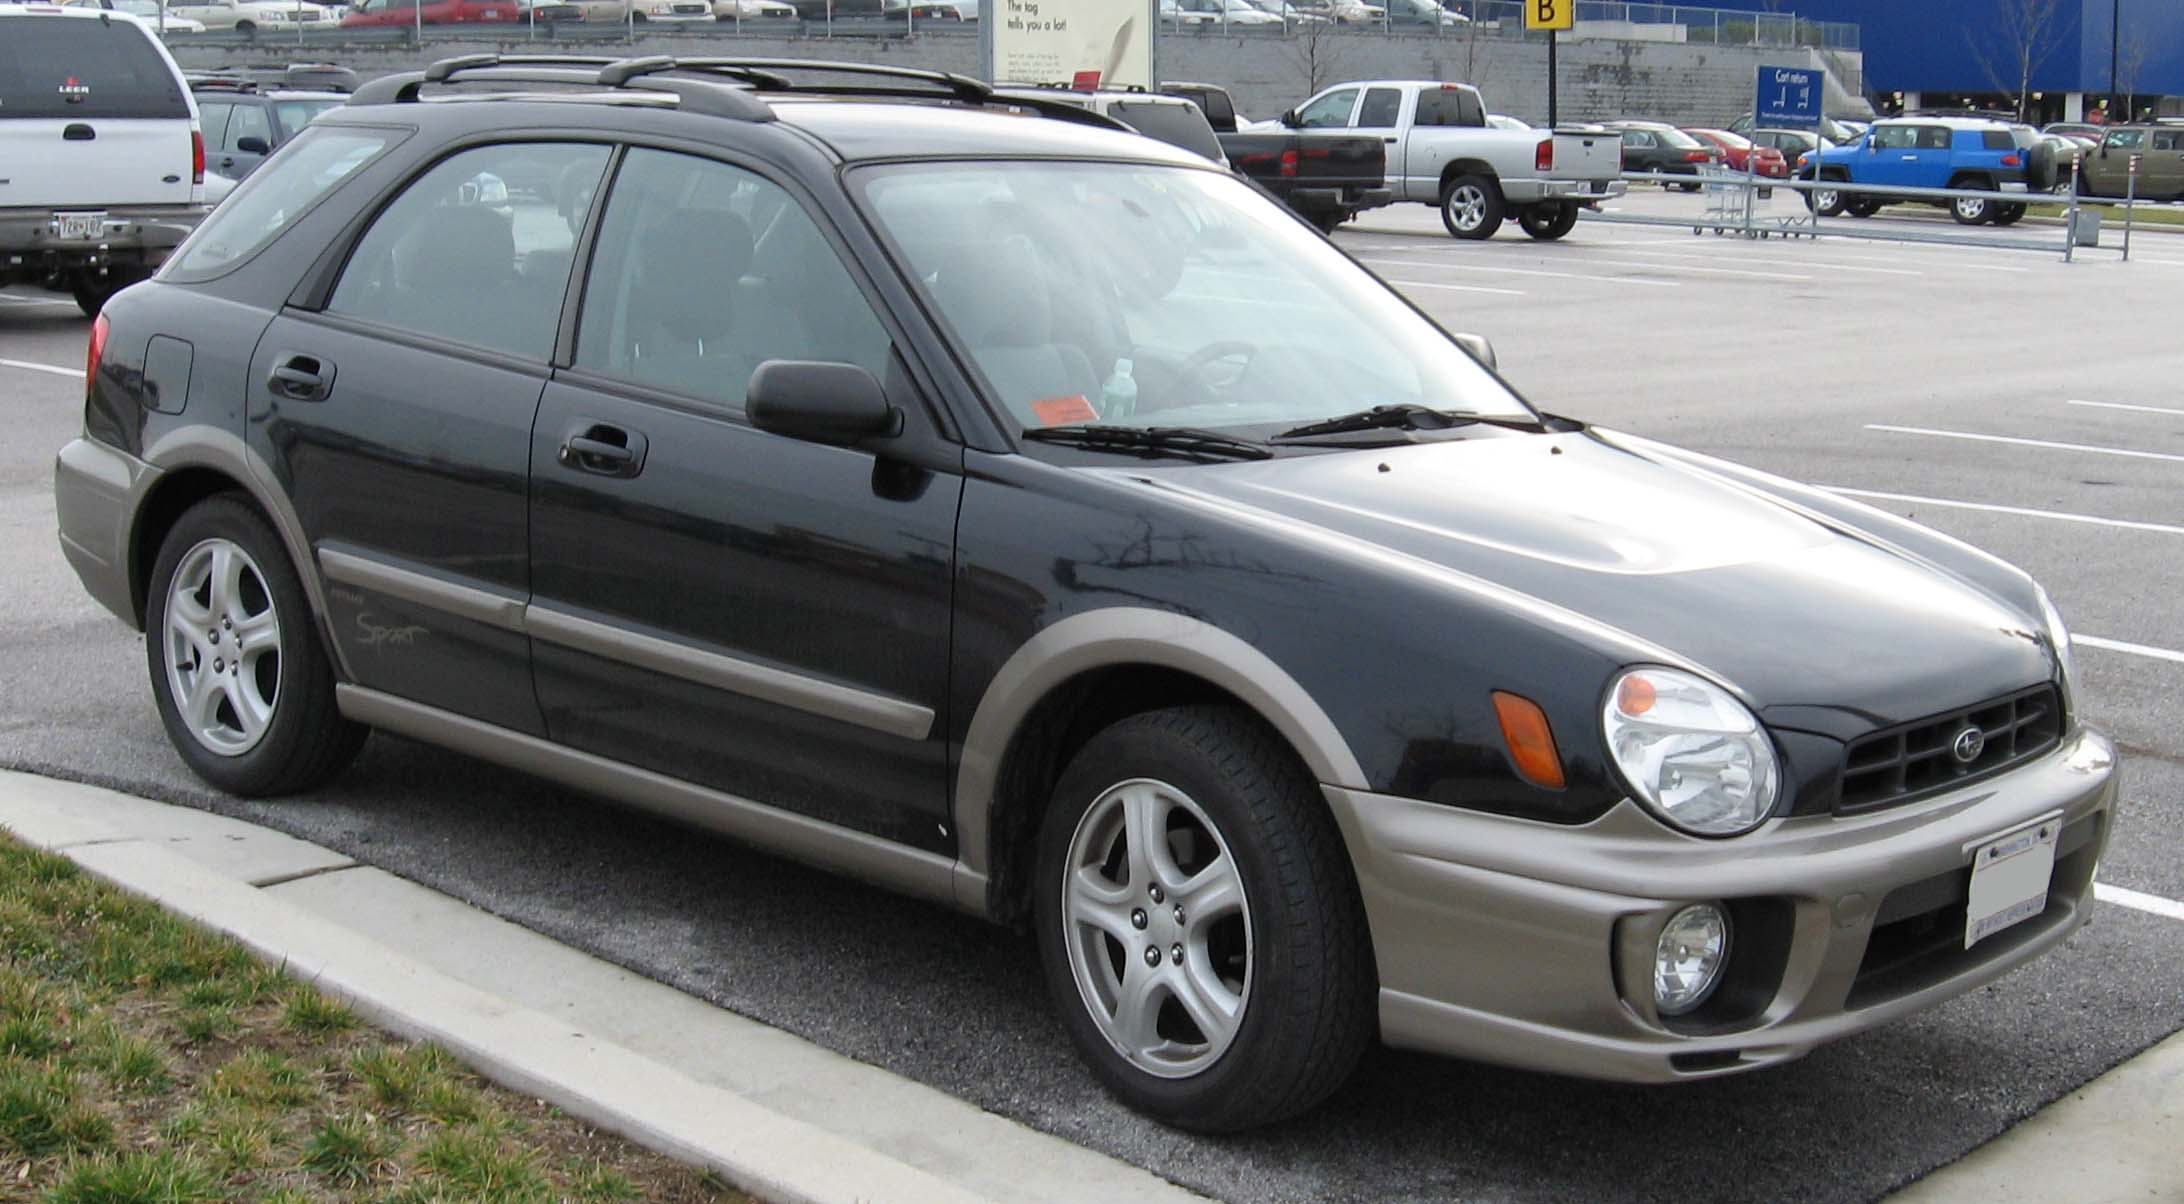 file:02-03 subaru outback sport - wikimedia commons